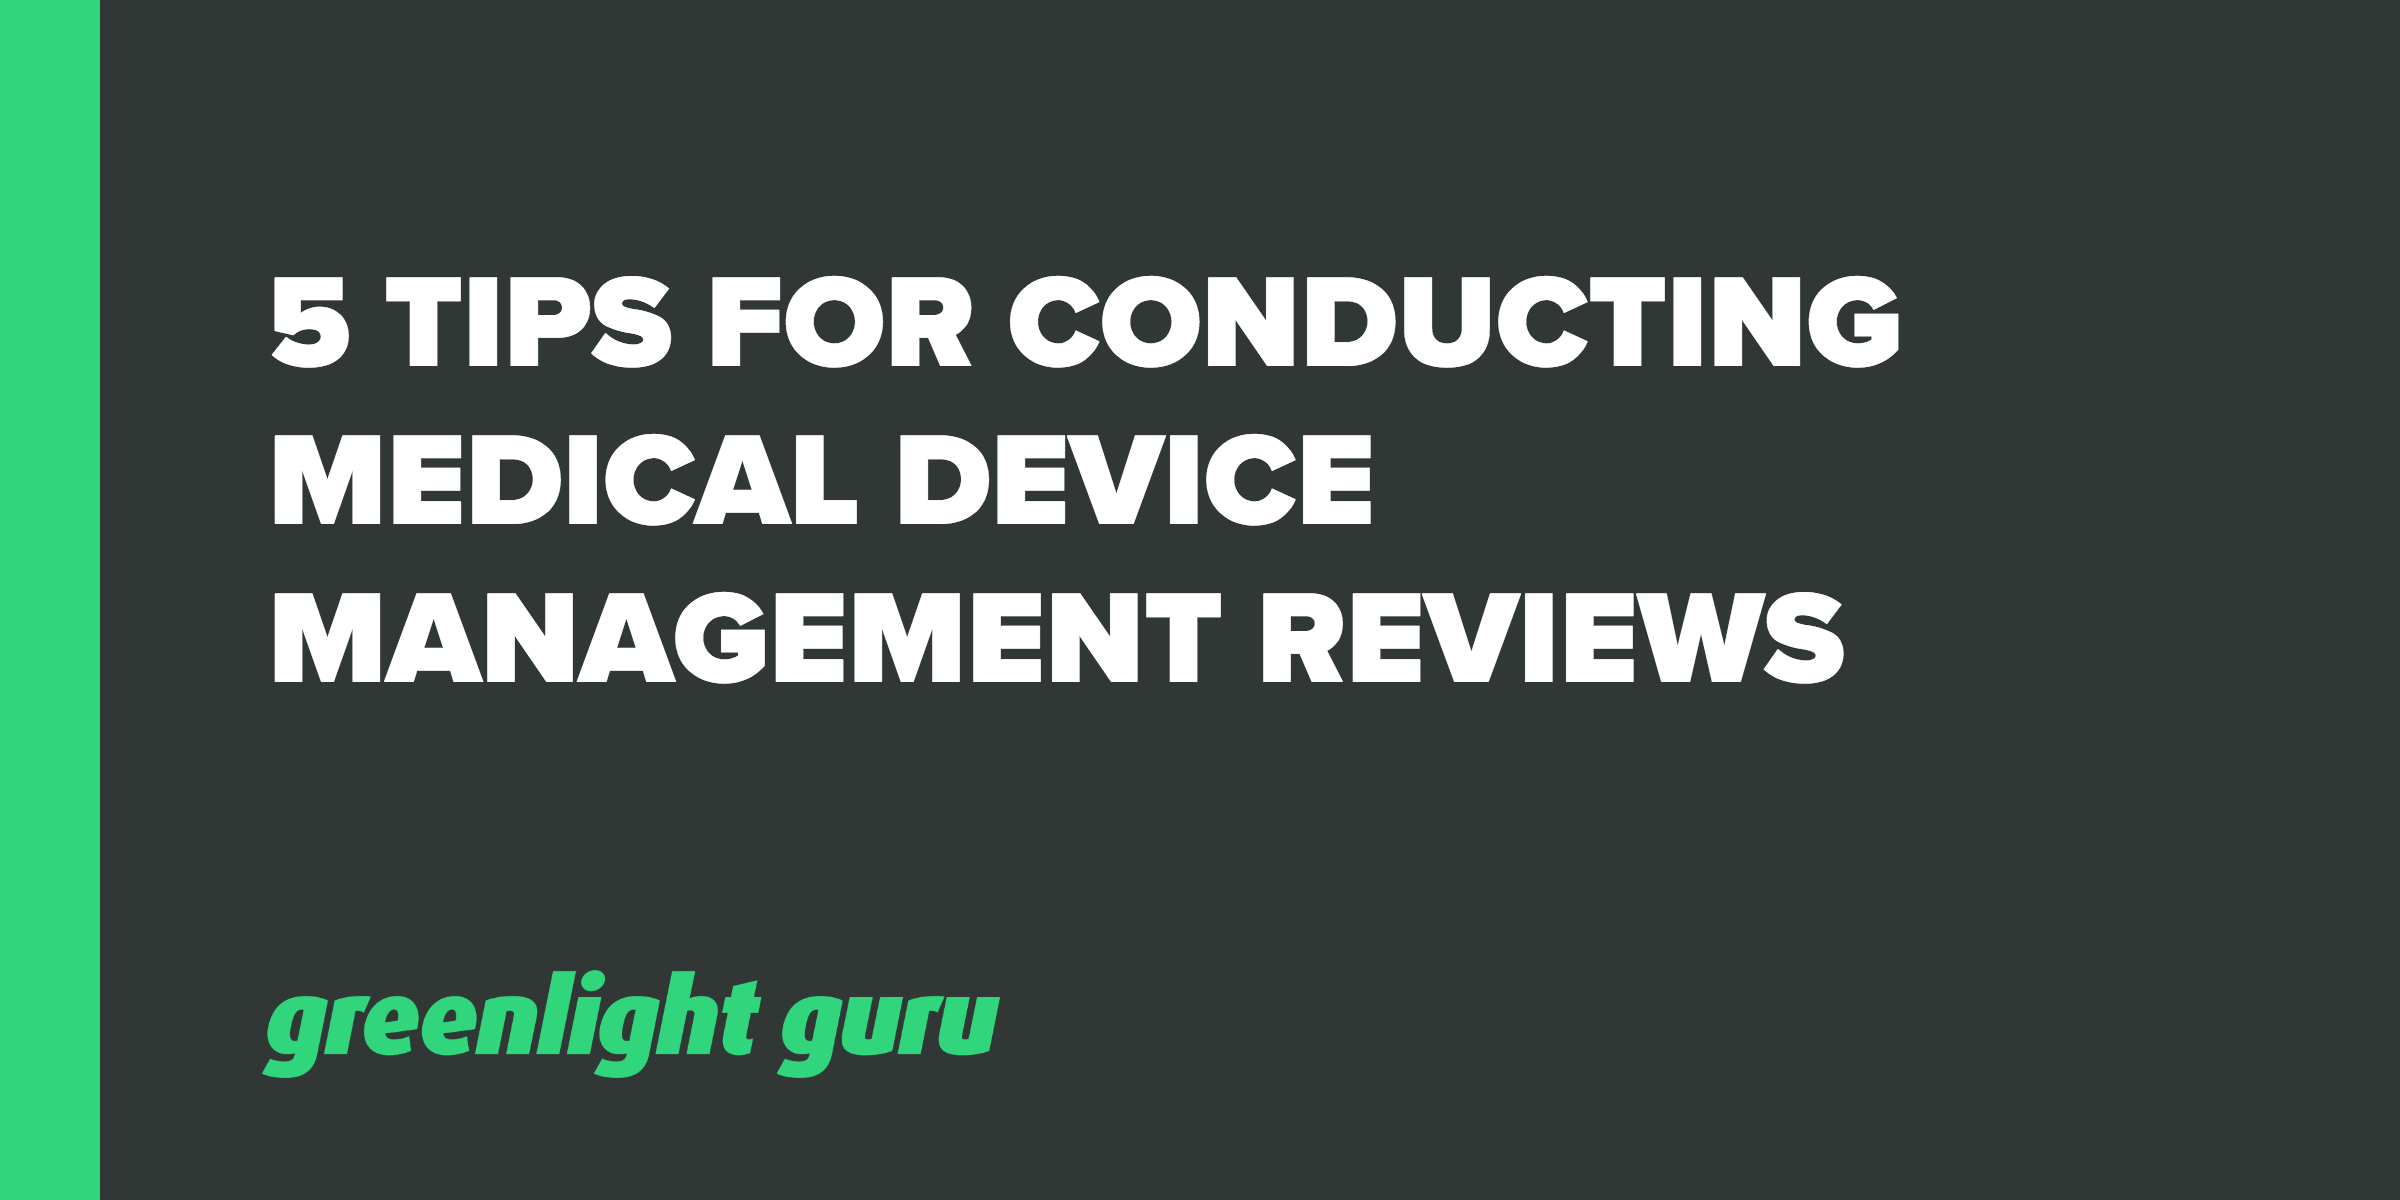 med device management reviews